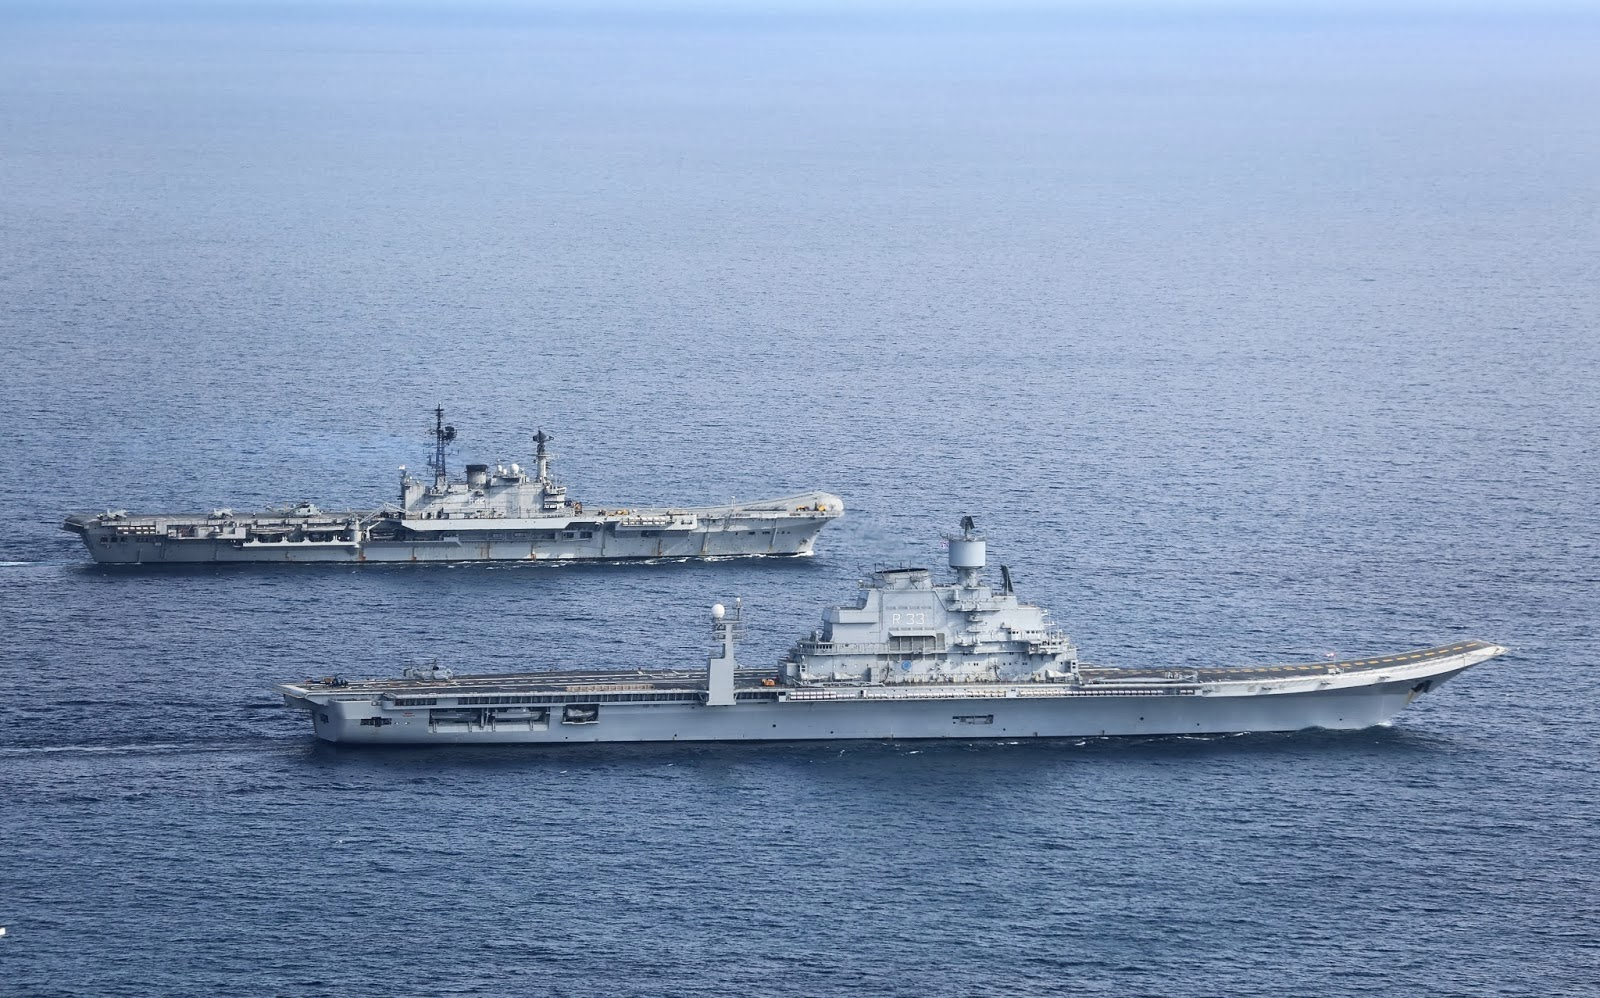 Indian Ins Vikramaditya R33 Aircraft Carrier Reaches Its